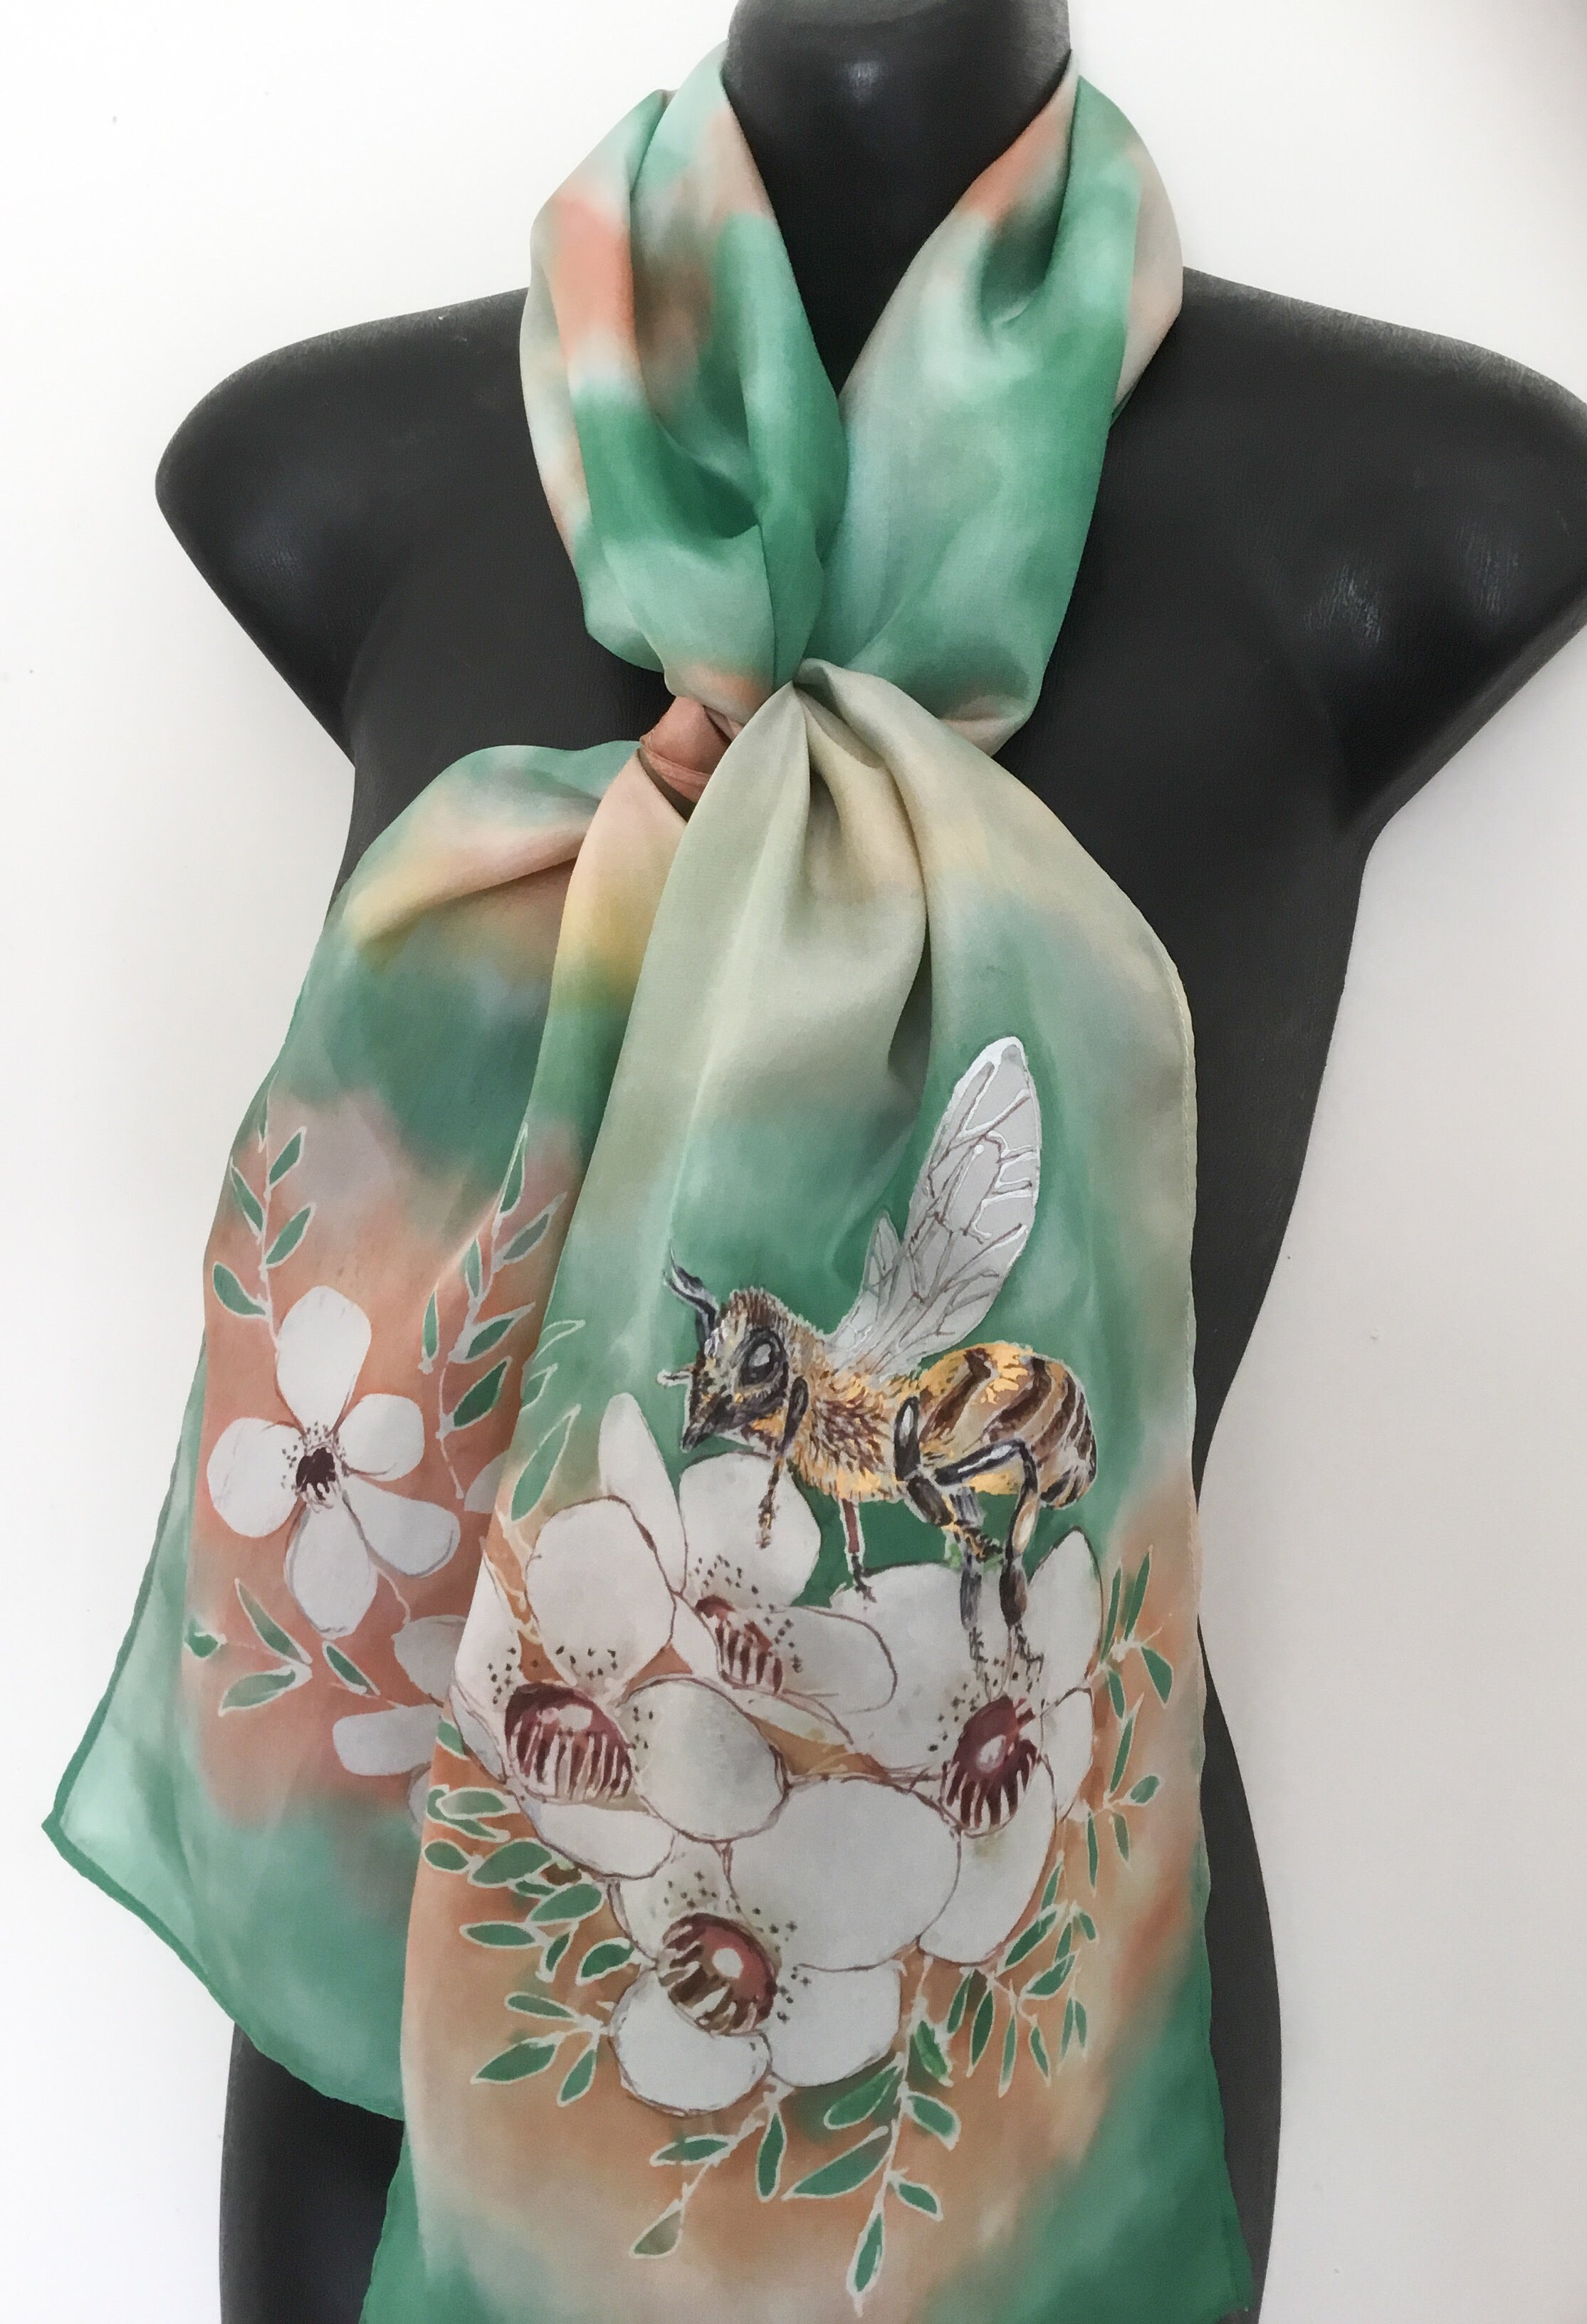 Bee on Manuka Flowers - Hand Painted Silk Scarf - Satherley Silks NZ